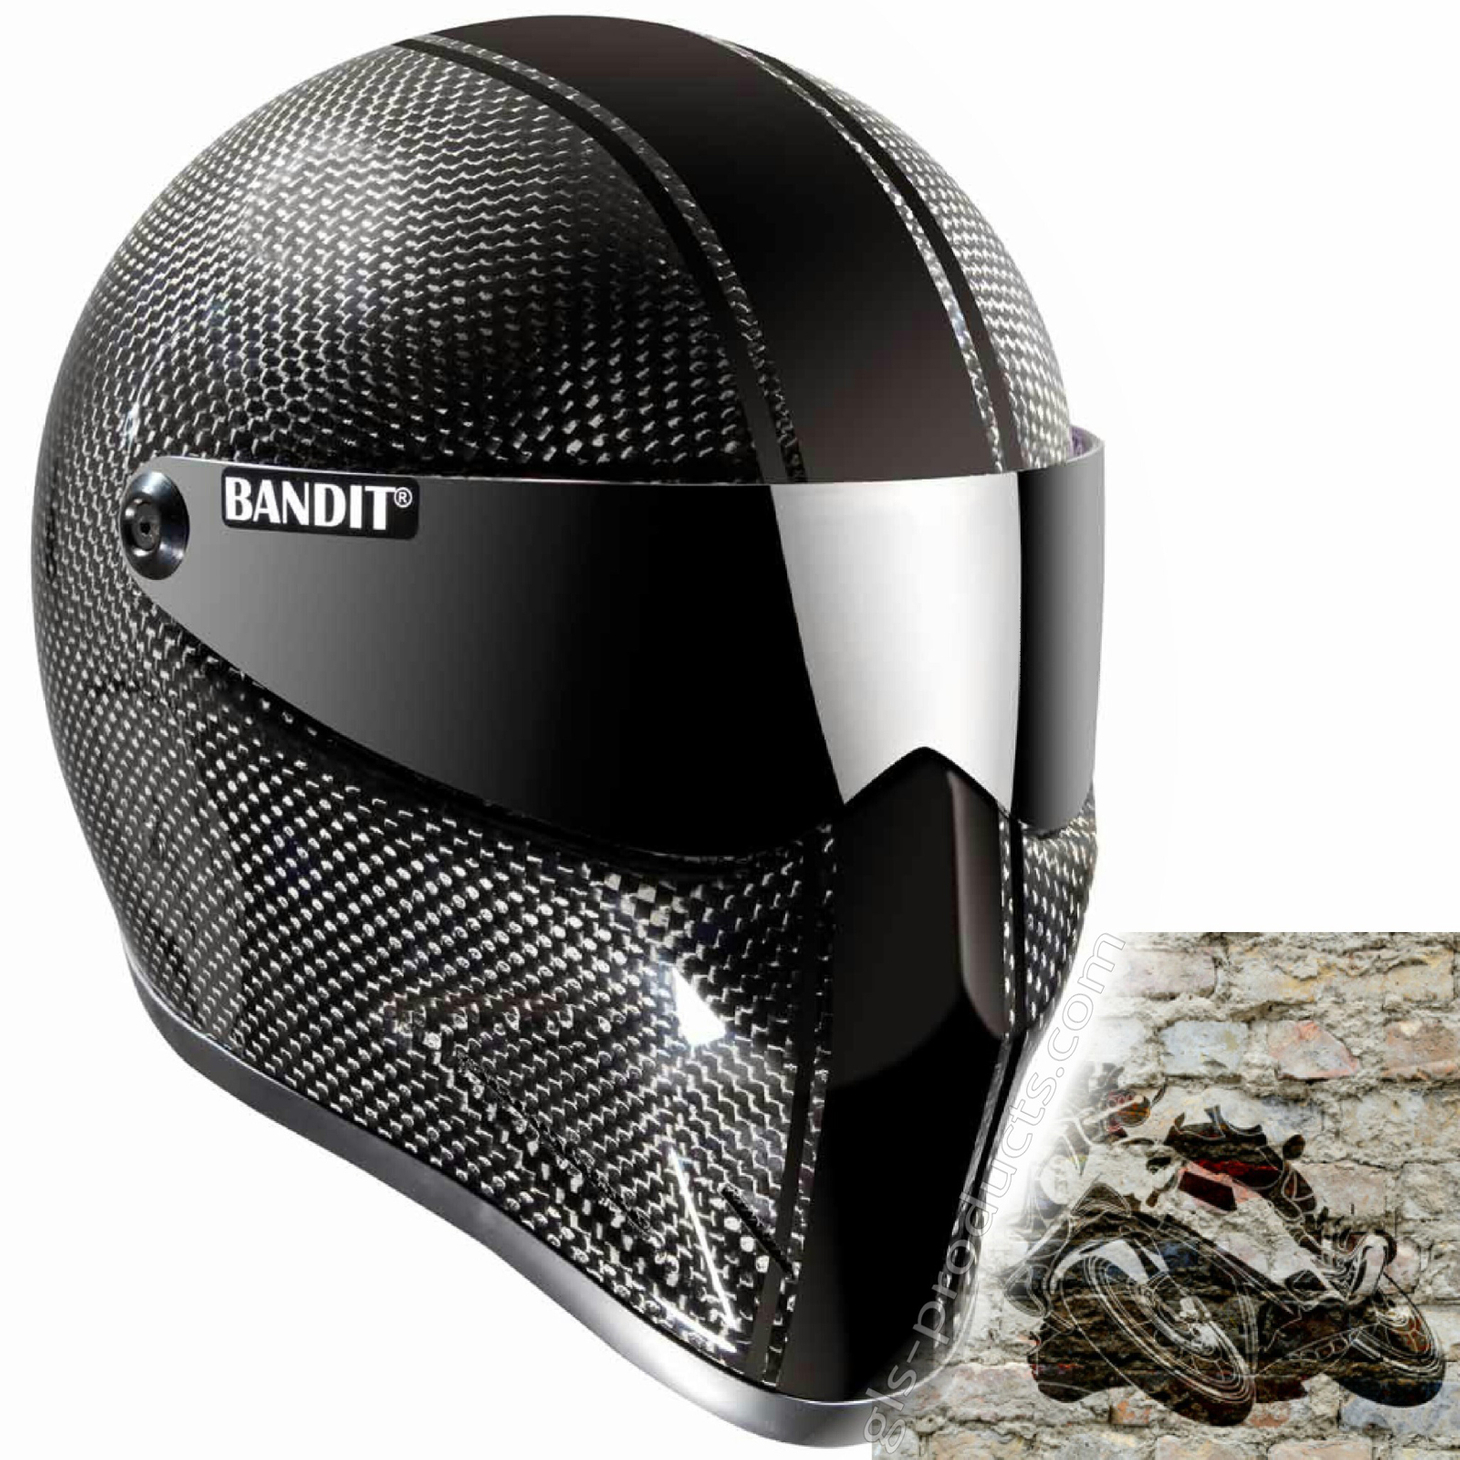 Bandit Crystal Race Carbon for Streetfighter – Picture 2